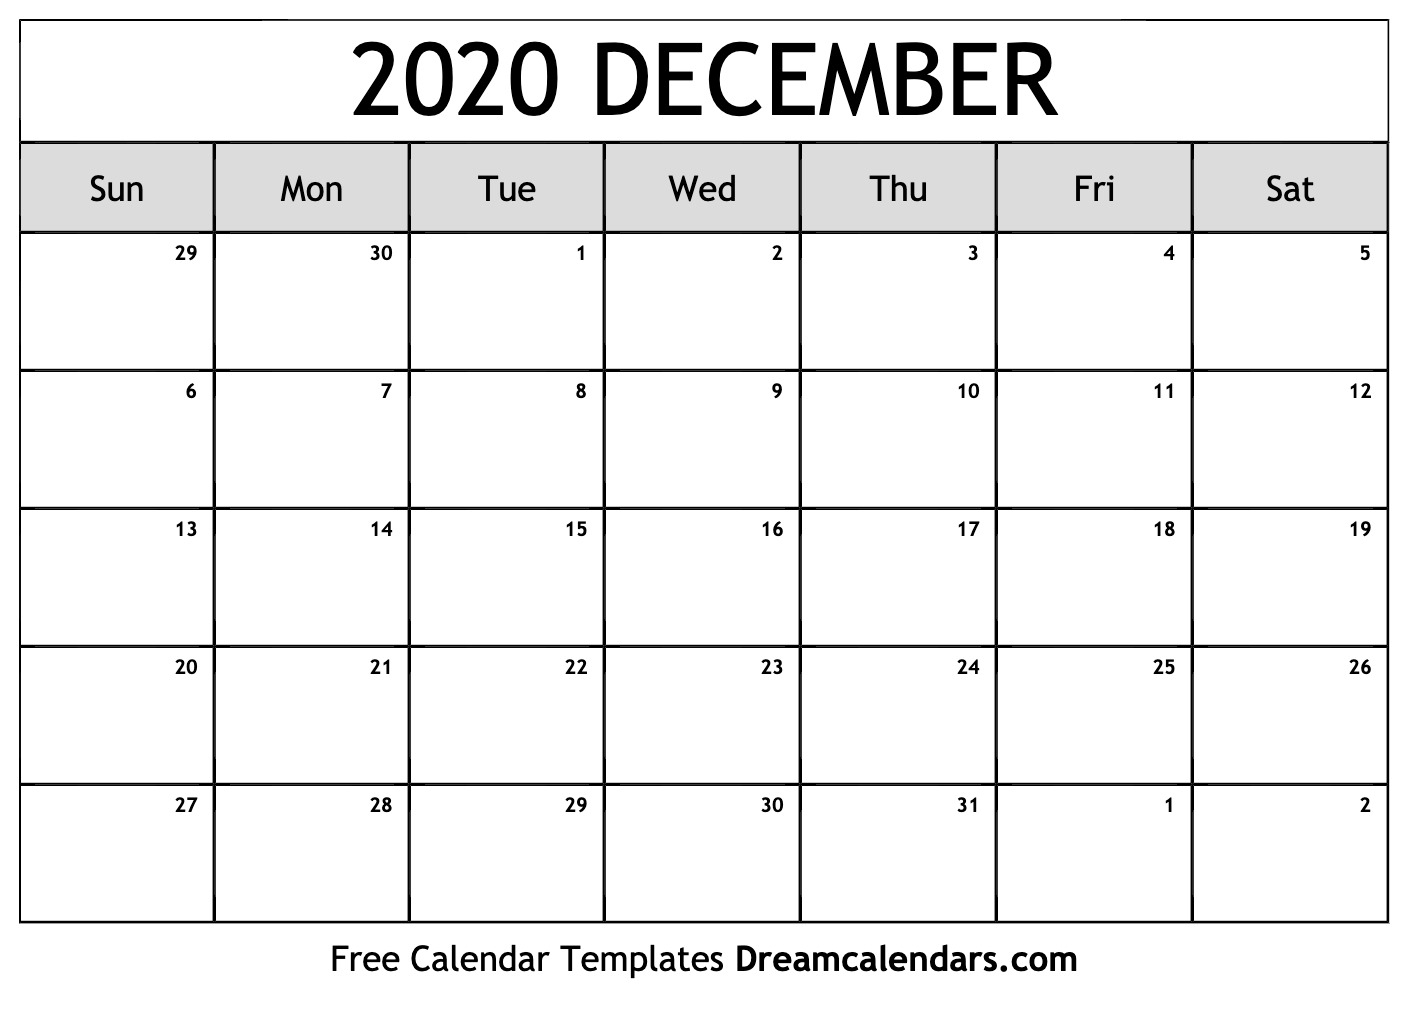 Calendar 2020 December Printable  Bolan.horizonconsulting.co intended for Calendar 2020 December